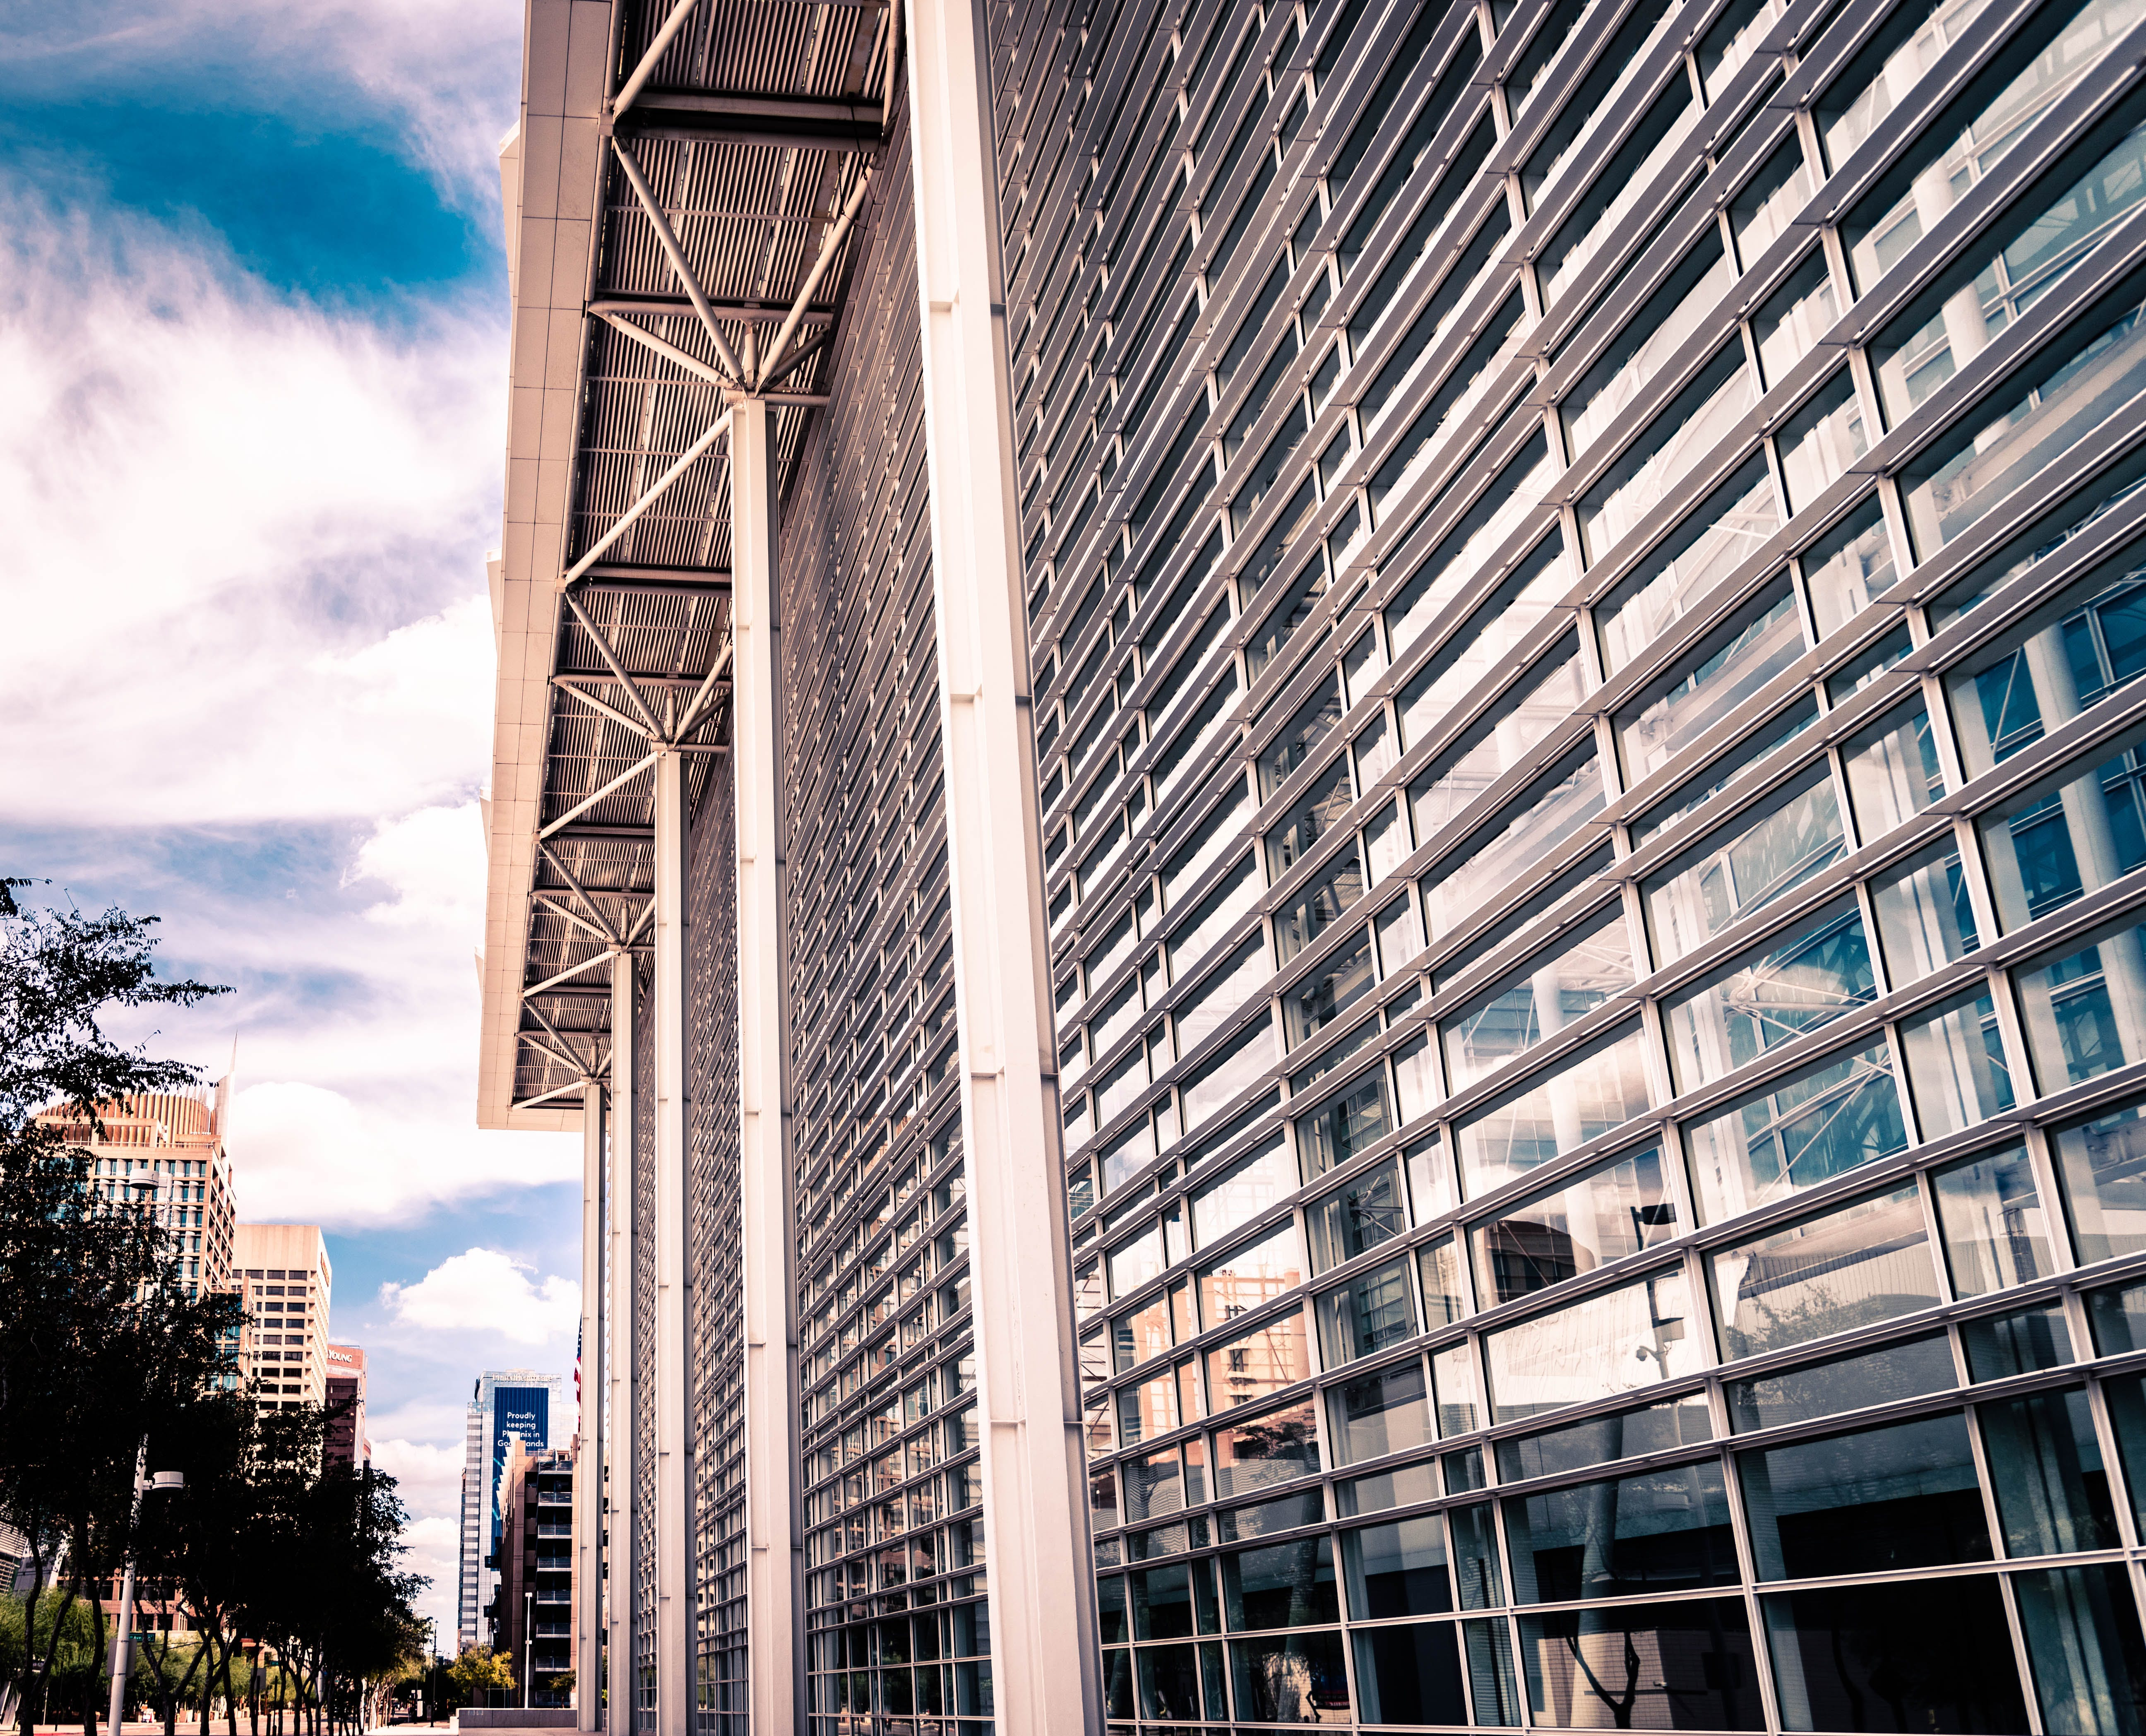 Free stock photo of city, building, glass, architecture